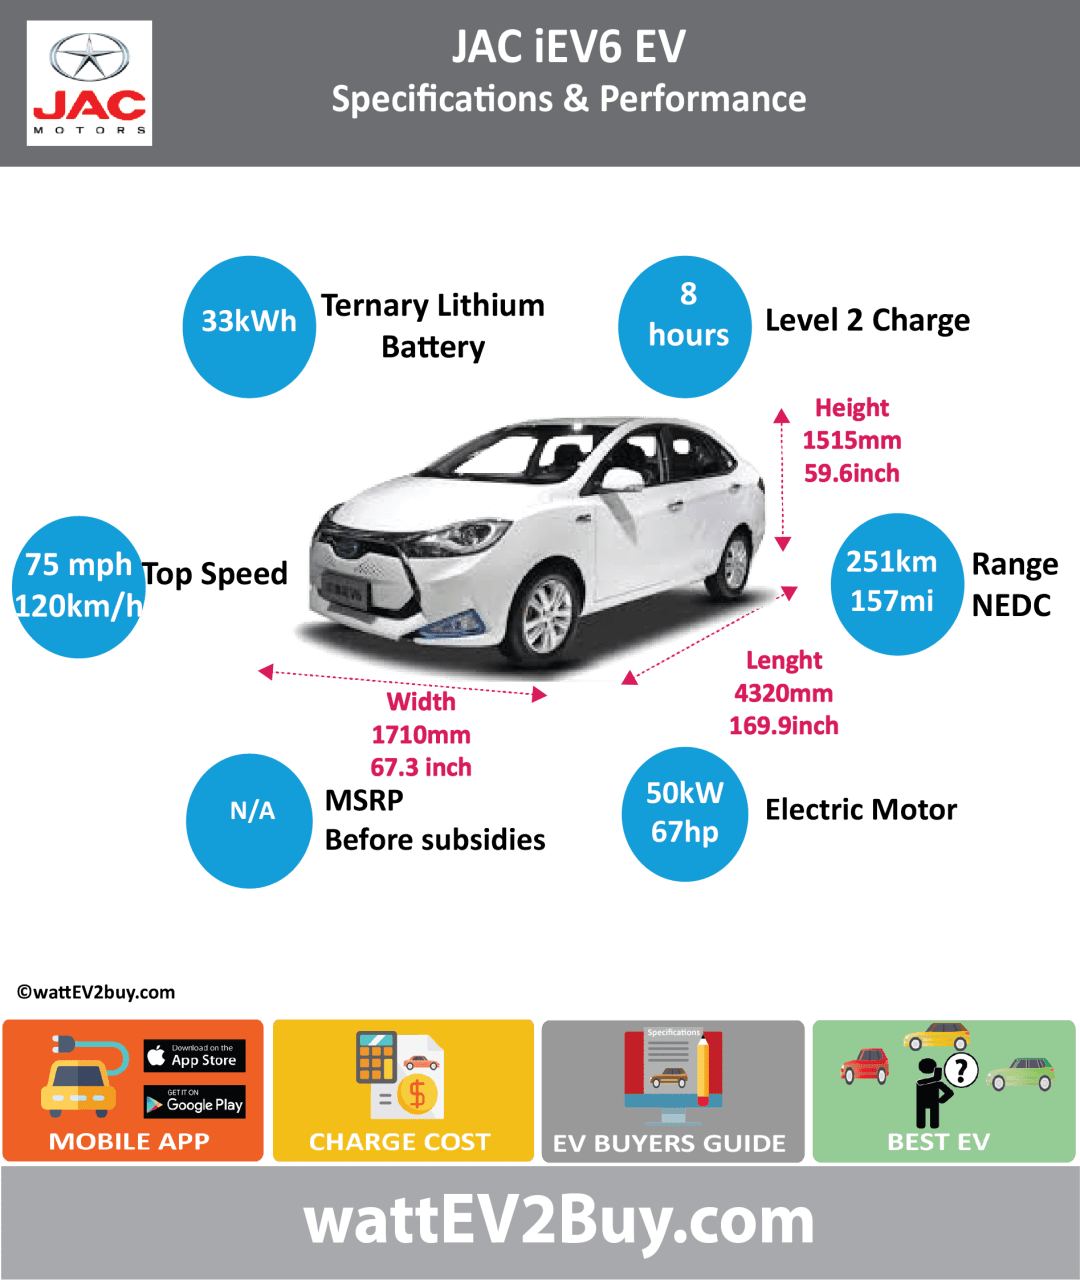 JAC iEV6 EVspecs wattev2Buy.com2016 Battery ChemistryTernary Lithium Battery Capacity kWh33 Battery Nominal rating kWh Voltage V Amps Ah70 Cells Modules Weight (kg)230 Cell Type Cooling Cycles Depth of Discharge (DOD) Energy Density Wh/kg Battery ManufacturerHua Ting (Hefei) Power Technology Co., Ltd Battery Warranty - years Battery Warranty - km Battery Electric Range - at constant 38mph188 Battery Electric Range - at constant 60km/h300 Battery Electric Range - NEDC Mi157 Battery Electric Range - NEDC km251 Electric Top Speed - mph75 Electric Top Speed - km/h120 Acceleration 0 - 100km/h sec Acceleration 0 - 50km/h sec Onboard Charger kW LV 1 Charge kW LV 1 Charge Time (Hours)8 LV 2 Charge kW LV 2 Charge Time (Hours)2.5 LV 3 CCS/Combo kW LV 3 Charge Time (min to 80%) Charge Connector MPGe Combined - miles MPGe Combined - km MPGe City - miles MPGe City - km MPGe Highway - miles MPGe Highway - km Max Power - hp67 Max Power - kW50 Max Torque - lb.ft Max Torque - N.m210 Drivetrain Electric Motor - Rear Electric Motor - Front Motor Type Electric Motor Output kW Transmission Energy Consumption kWh/100km CHINA MSRP (before incentives & destination) MSRP after incentives Vehicle Doors Seating Dimensions GVWR (kg)1635 Curb Weight (kg)1310 Payload Capacity (lbs) Towing Capacity (lbs) Ground Clearance (mm) Lenght (mm)4320 Width (mm)1701 Height (mm)1515 Wheelbase (mm)2490 Lenght (inc)169.9 Width (inc)66.9 Height (inc)59.6 Wheelbase (inc)97.9 Other Market Class Incentives Safety Level Chinese Name江淮 iEV6 Model CodeHFC7001EAEV